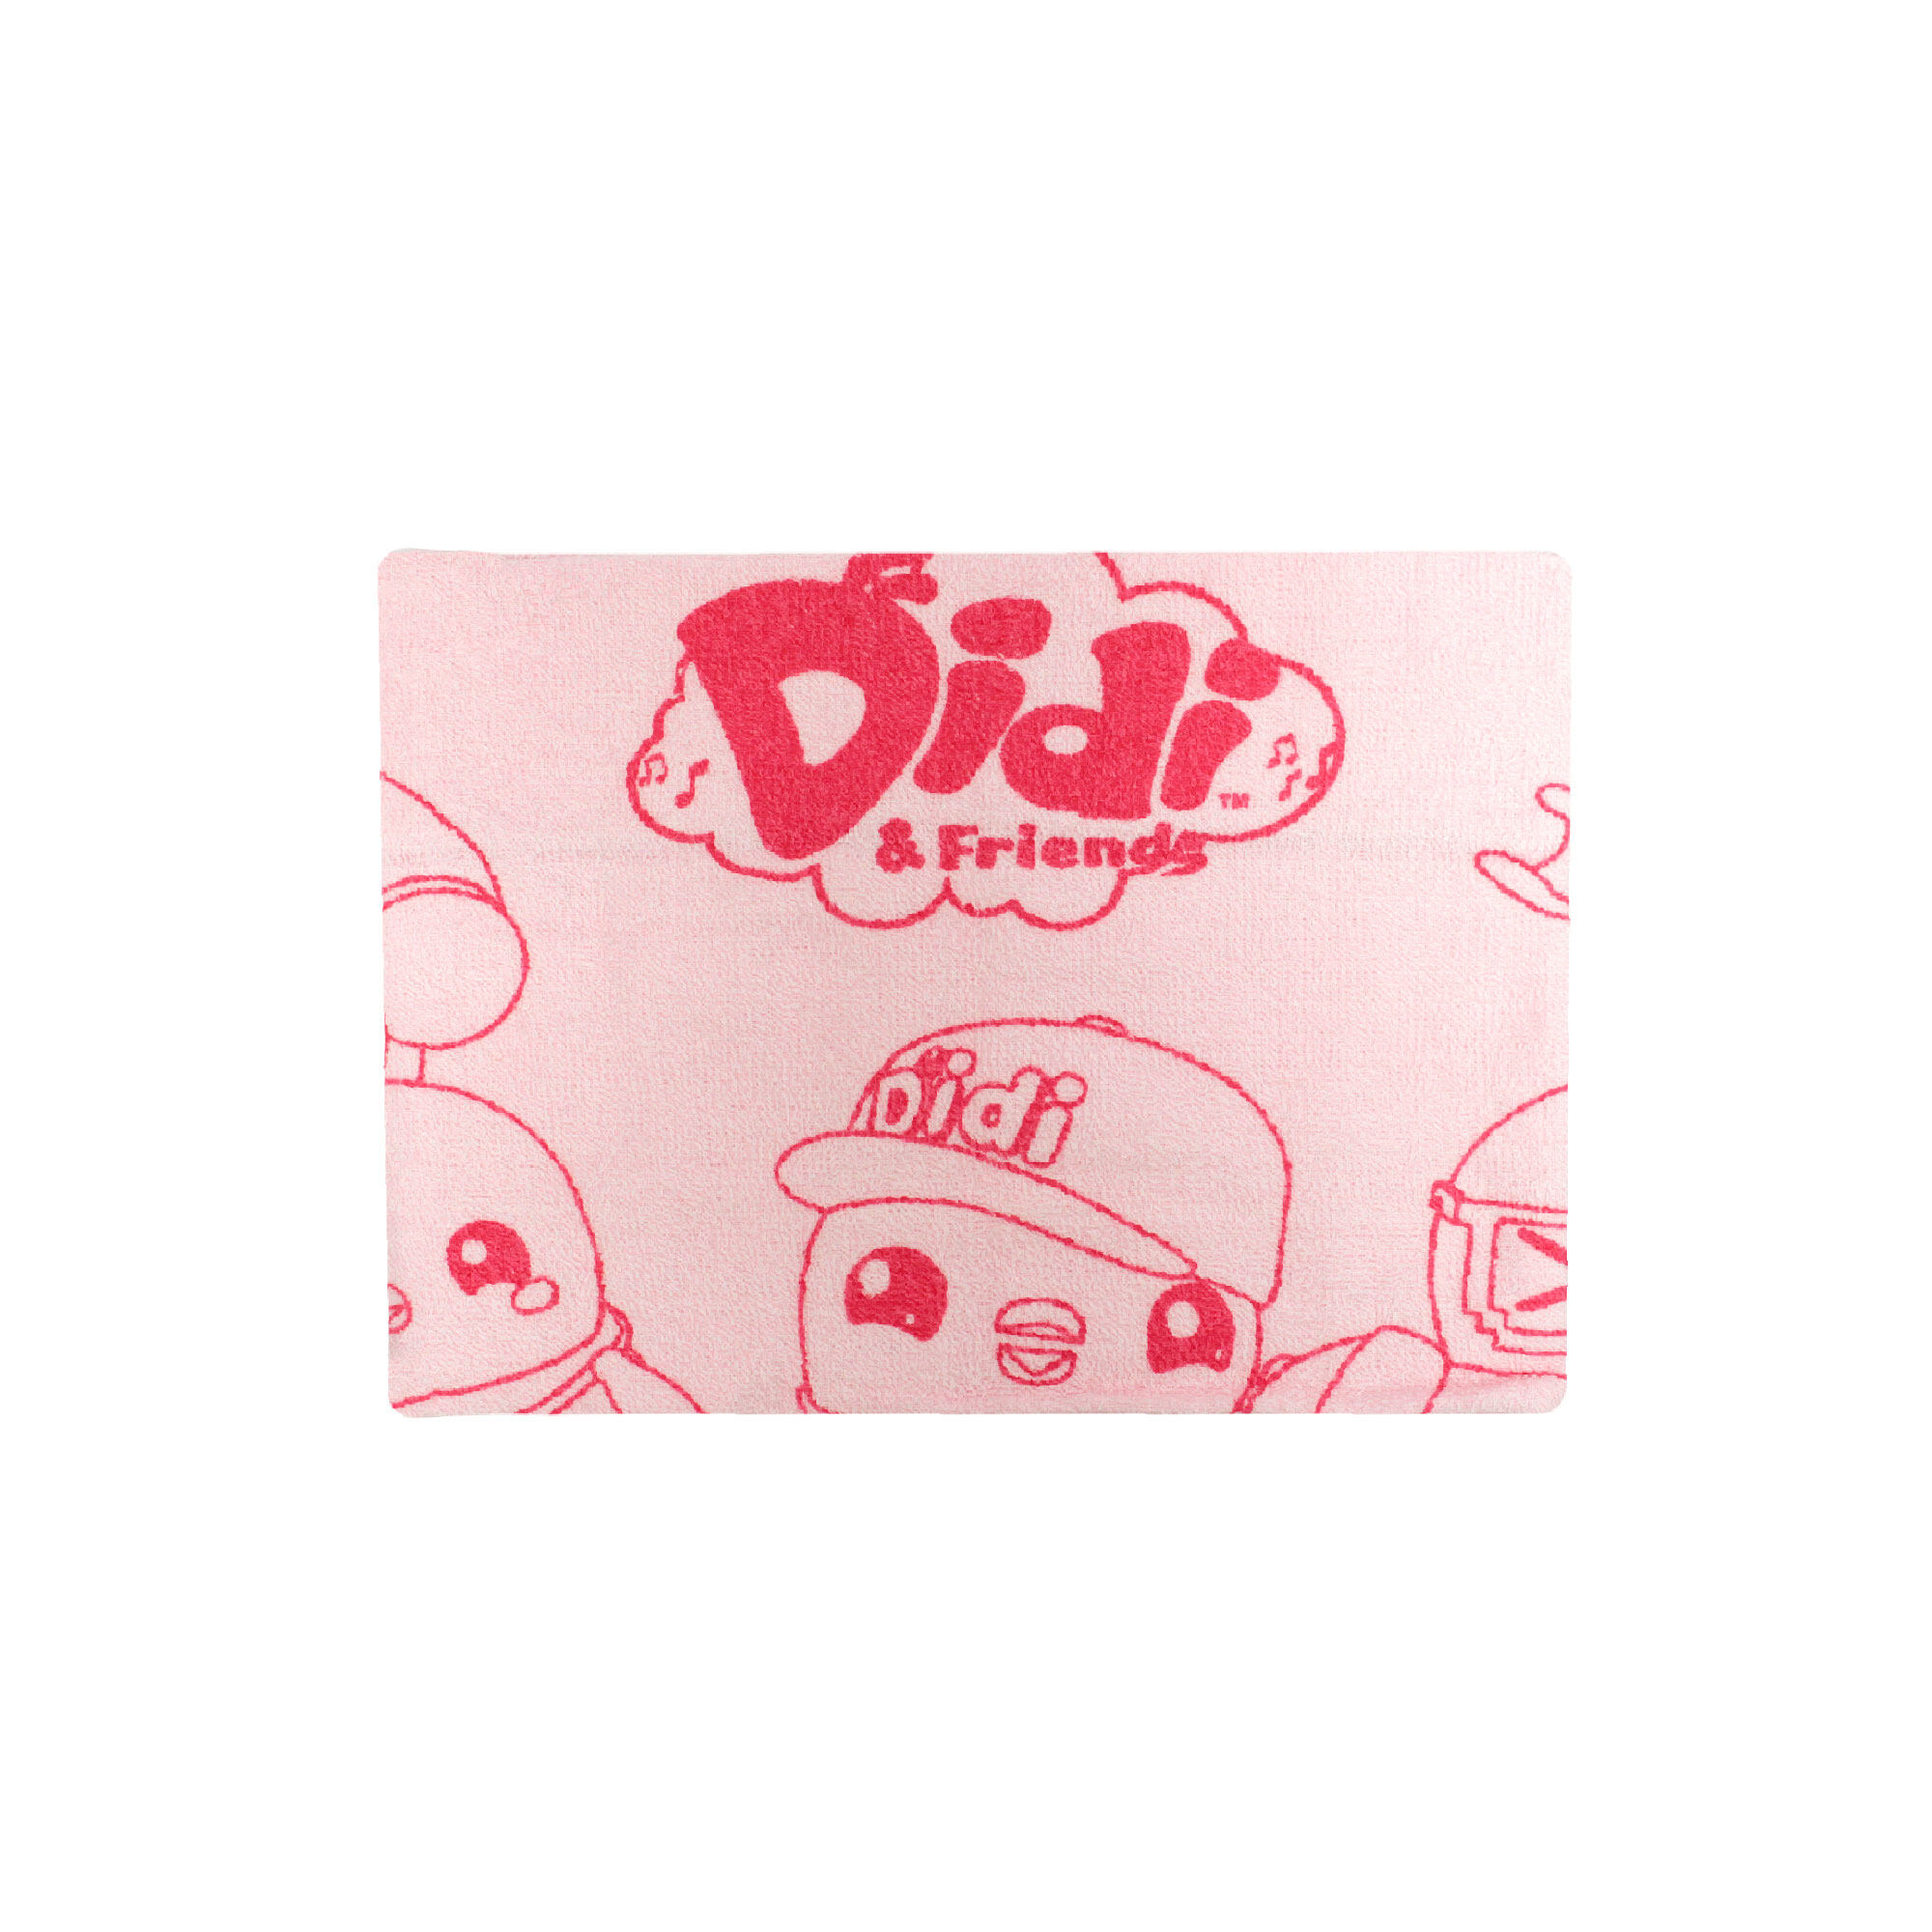 Didi & Friends 2 In 1 Baby Bath Towel- Pink Colour